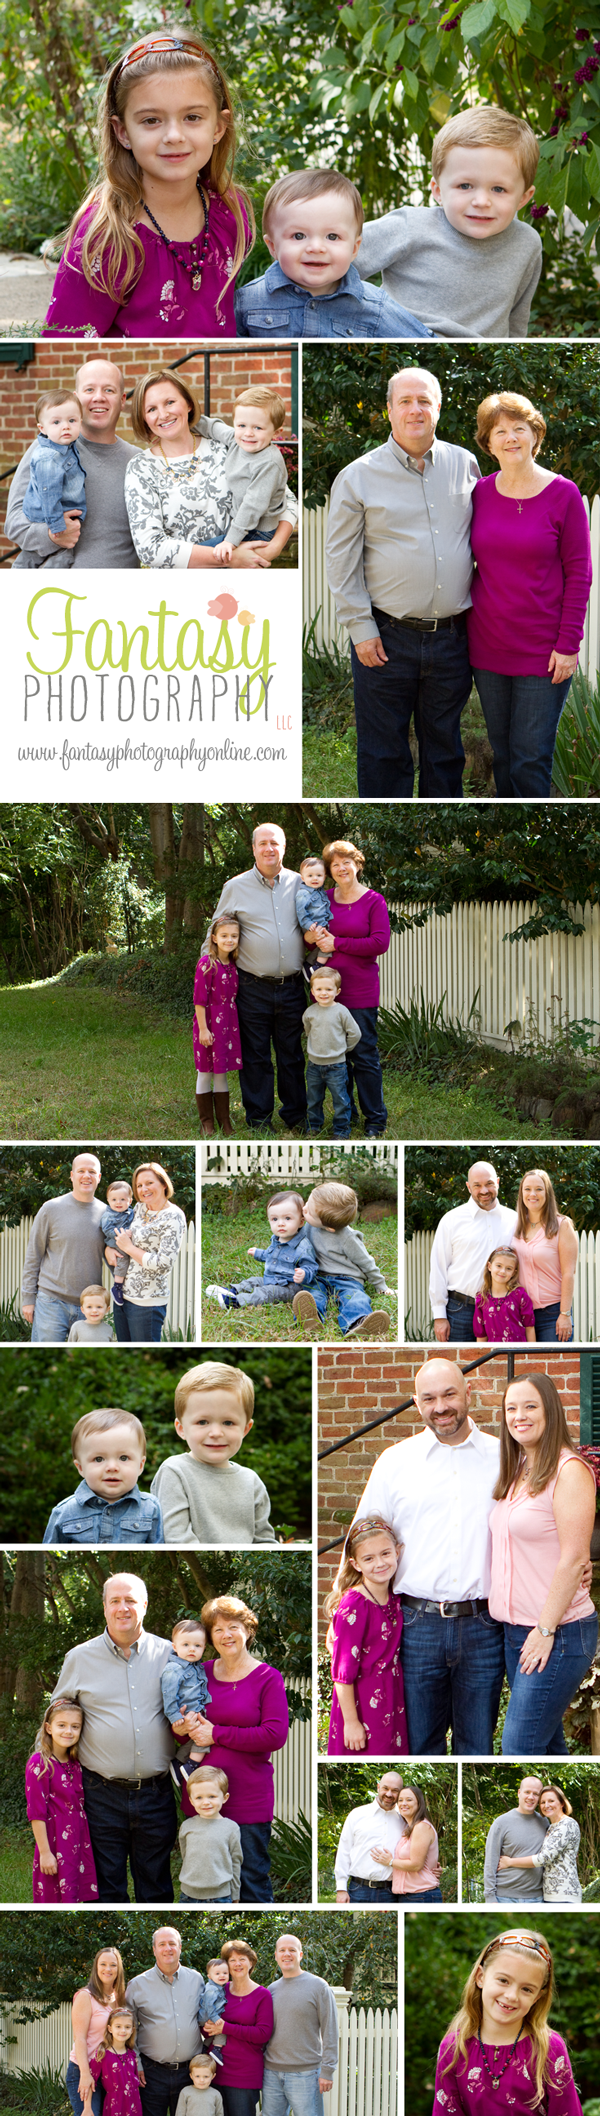 Winston Salem Family Photographer | Family Photographers in Winston Salem